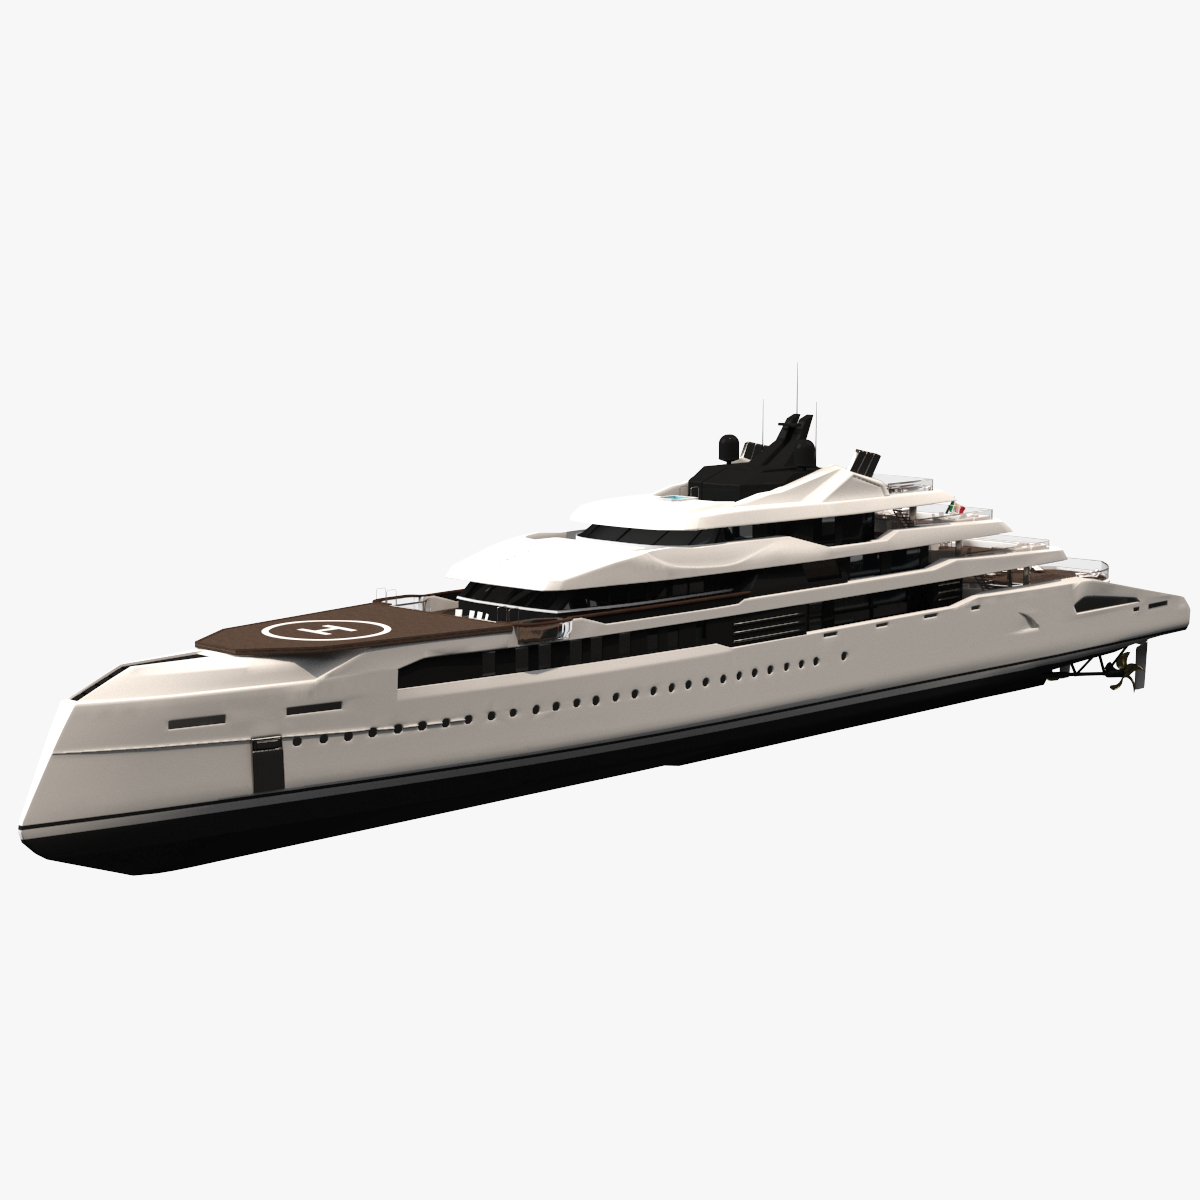 ganimede yachts dynamic simulation 3D model